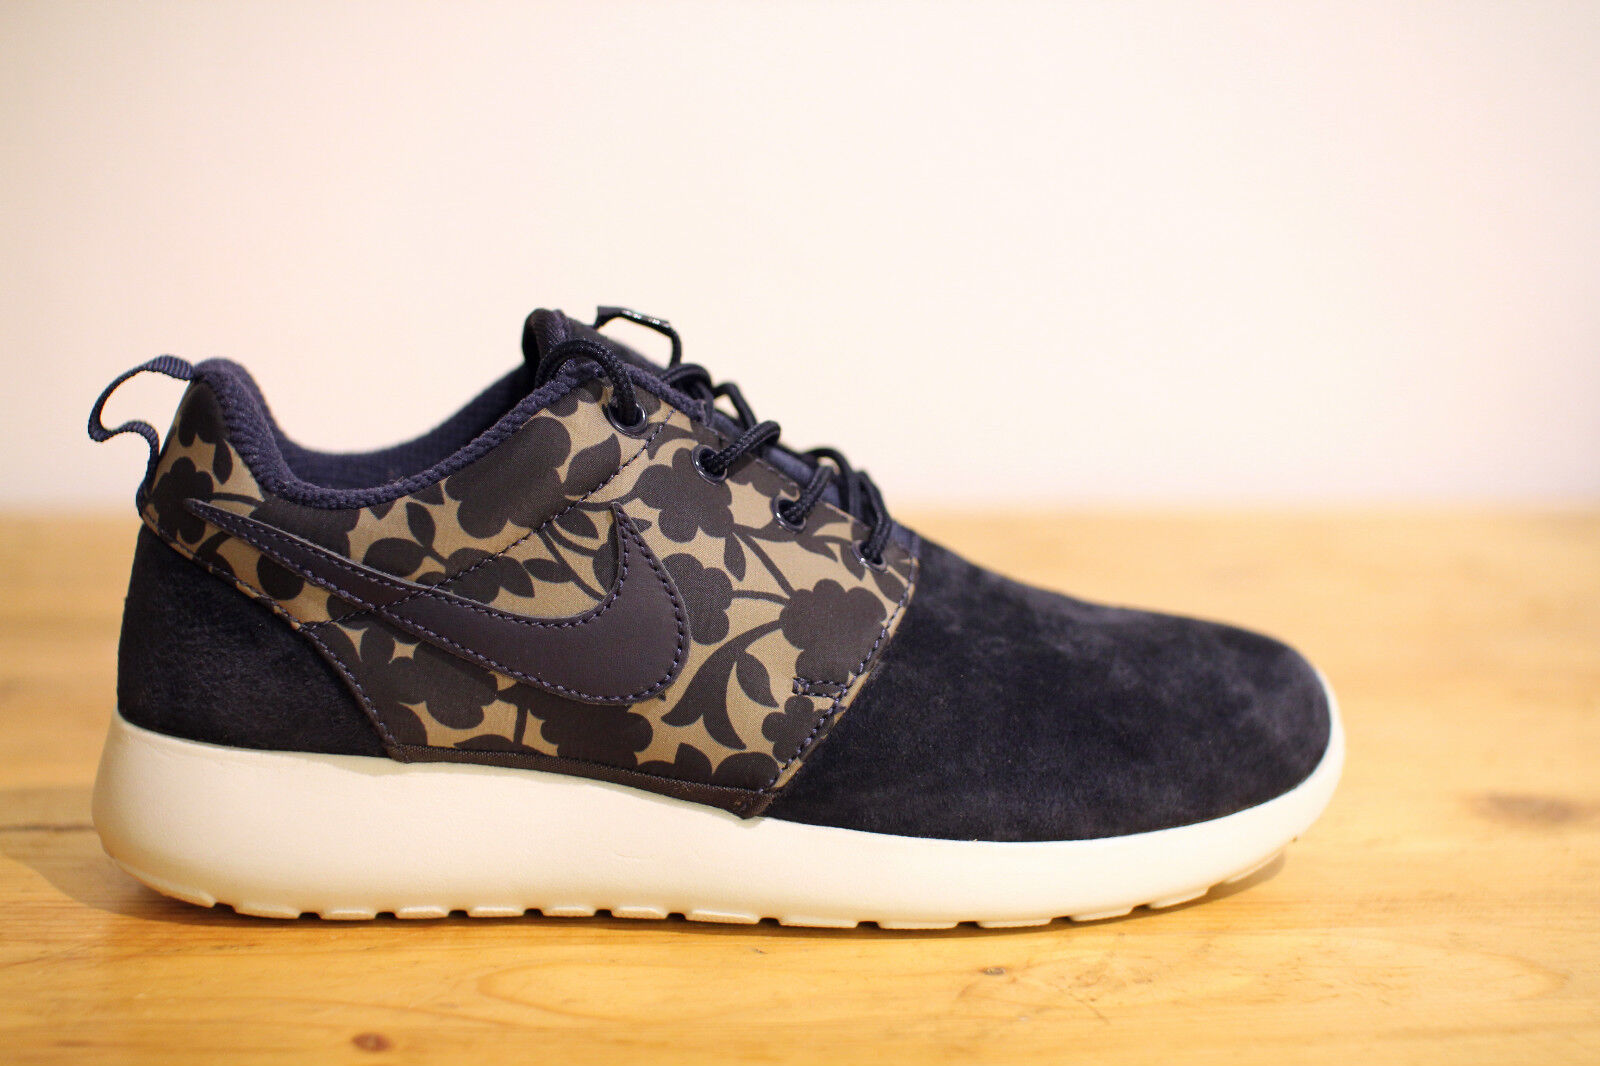 Nike Roshe One NEU Liberty QS WMNS Run Gr. 38,39,40 NEU One & OVP 698891